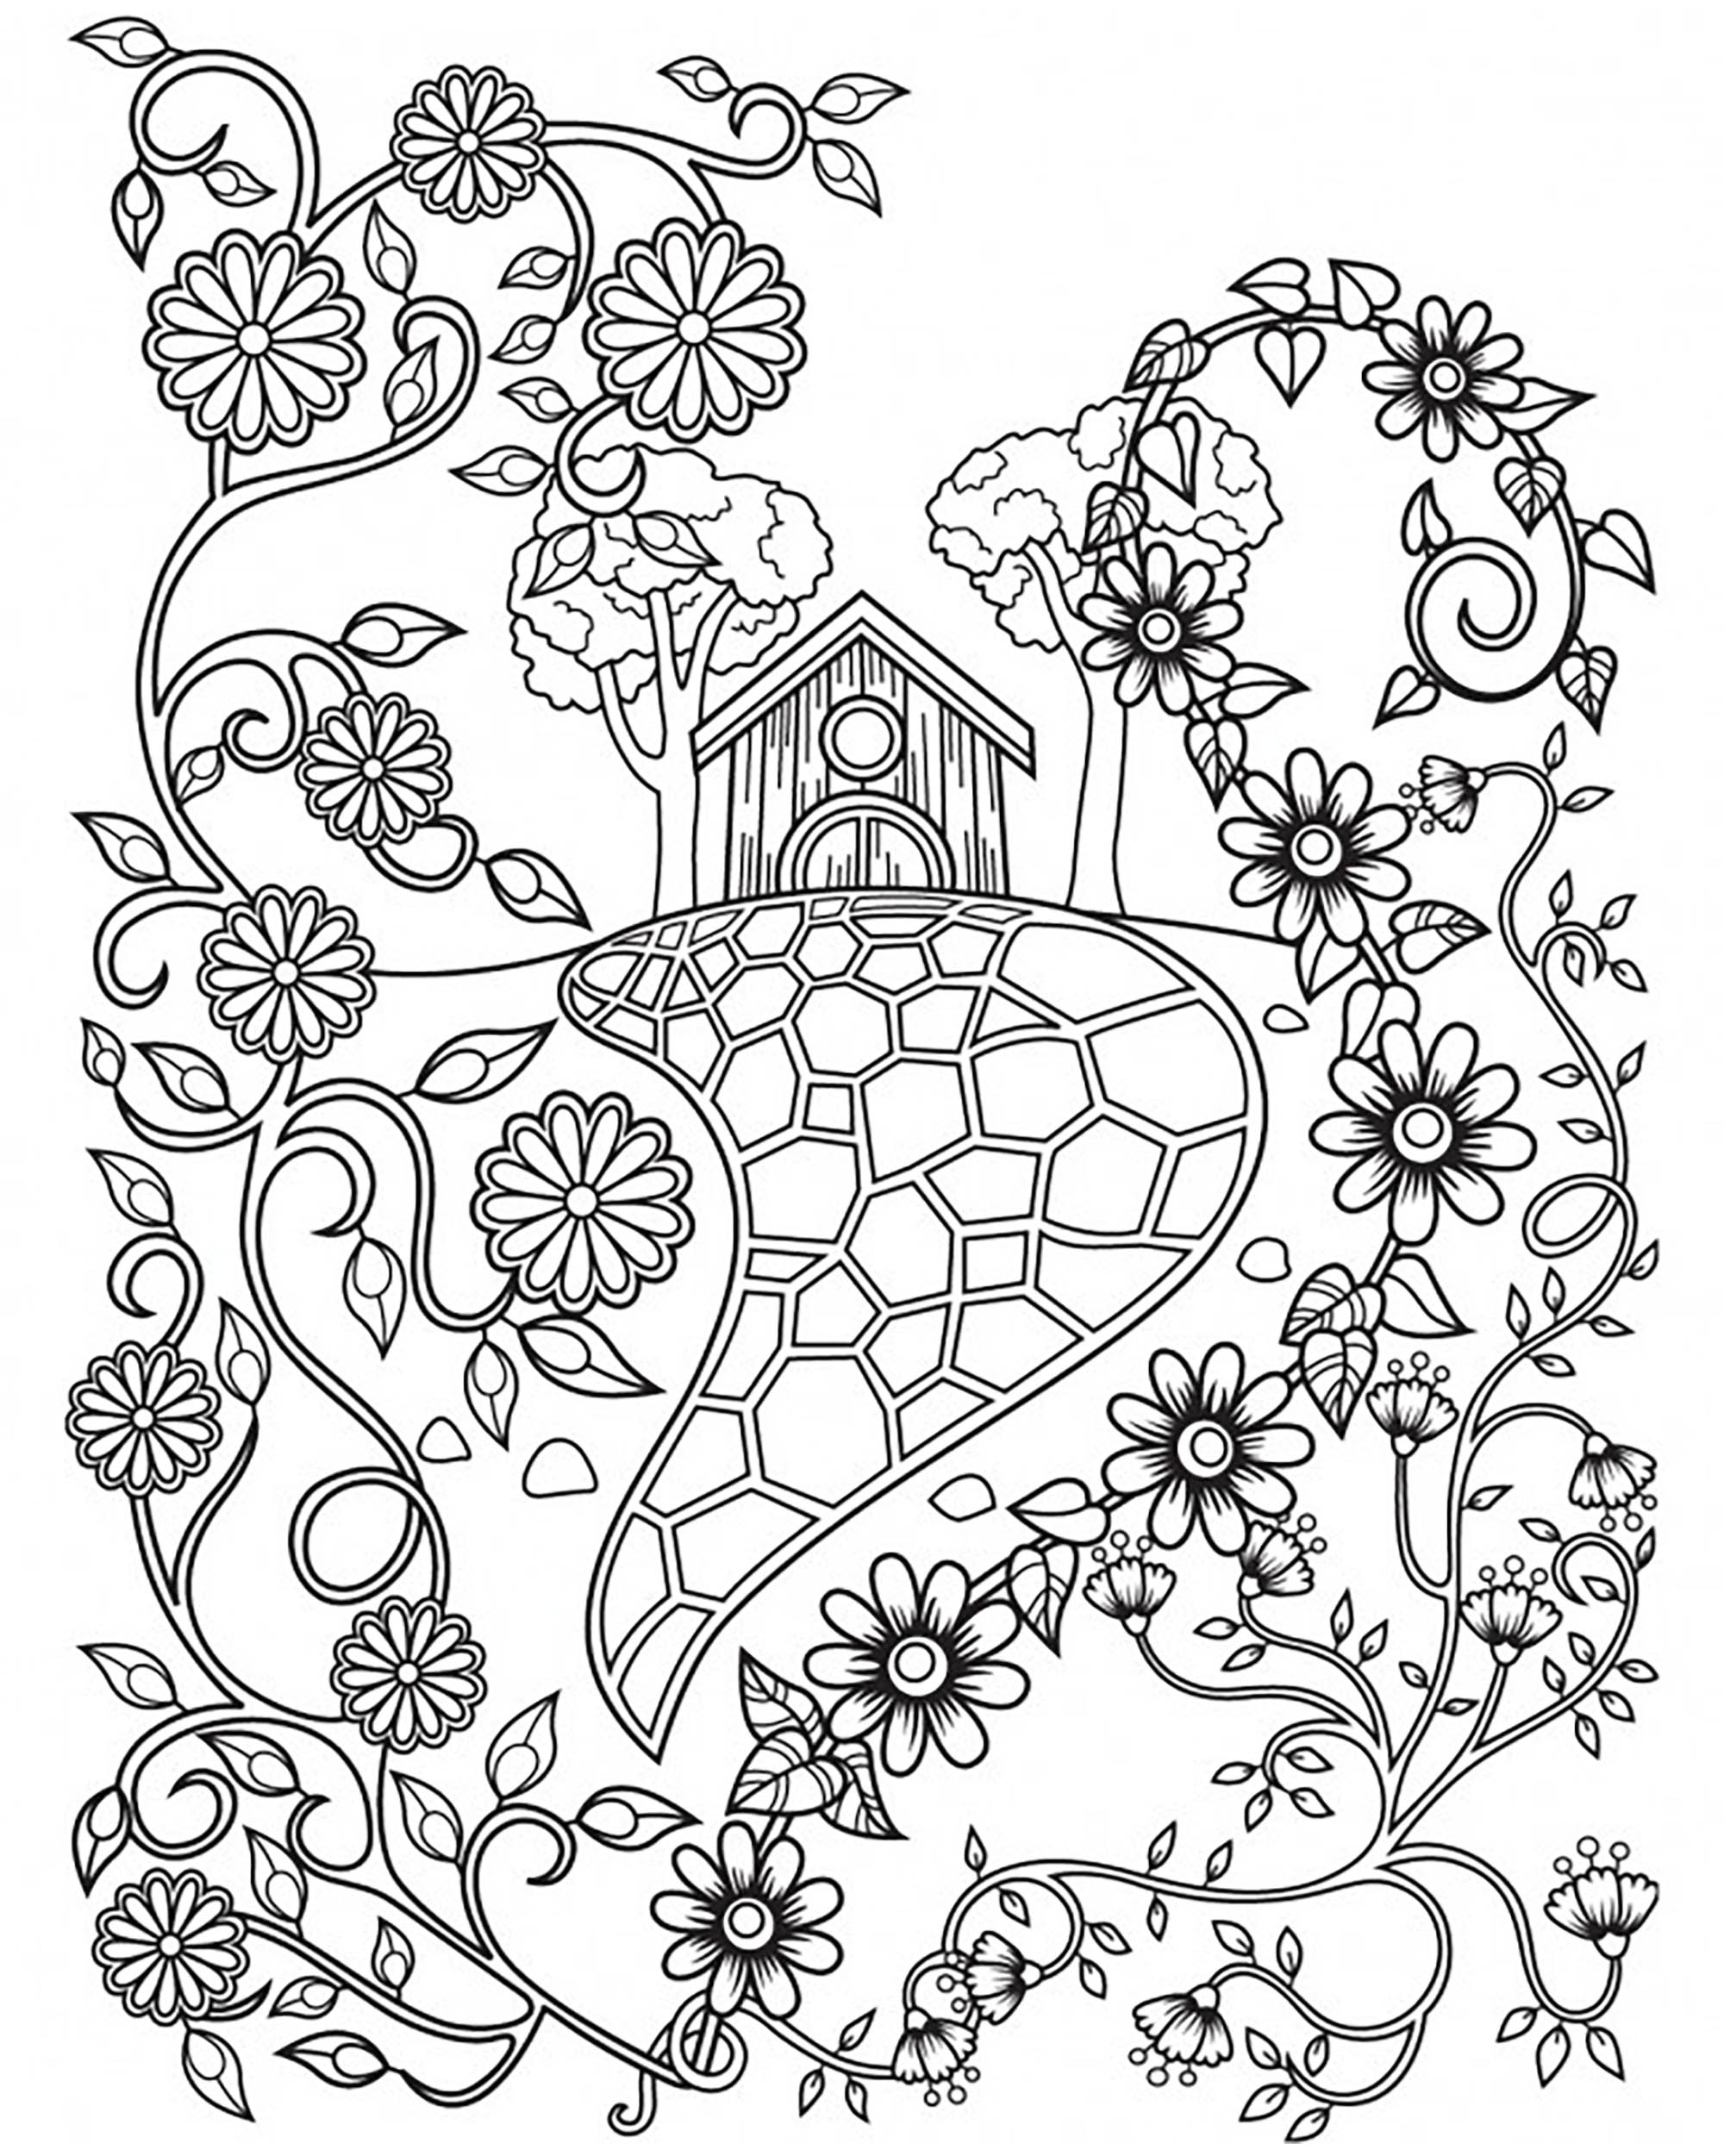 coloring pages fairytales - photo#49